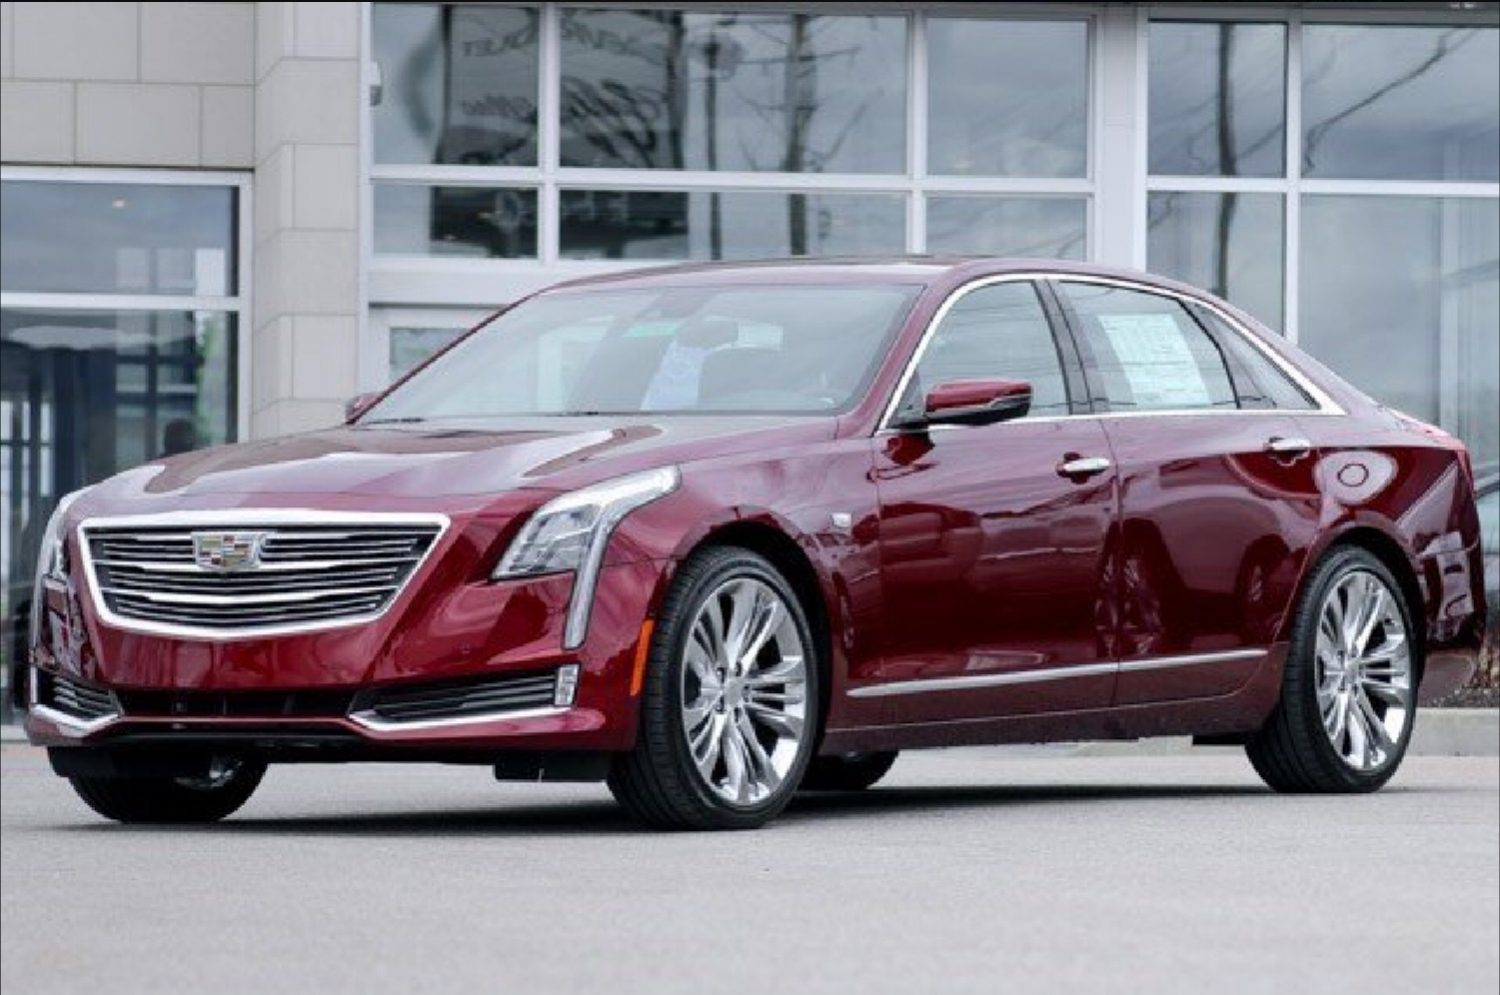 Cadillac CT6: Now Appearing At Dealers | AutoVerdict